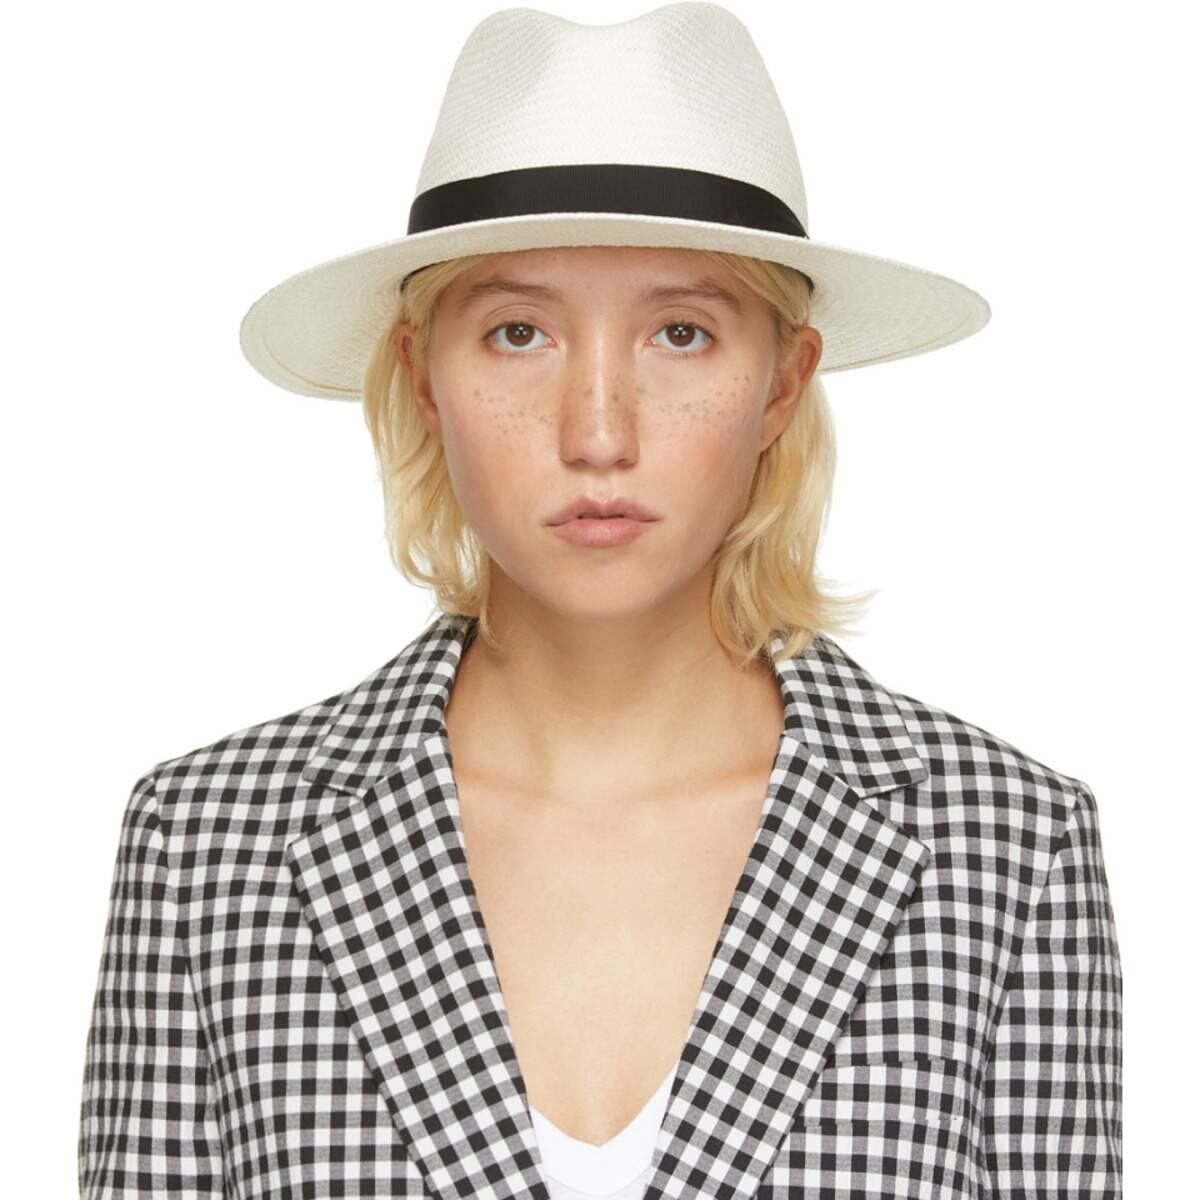 rag and bone White Straw Panama Hat Ssense USA WOMEN Women ACCESSORIES Womens HATS